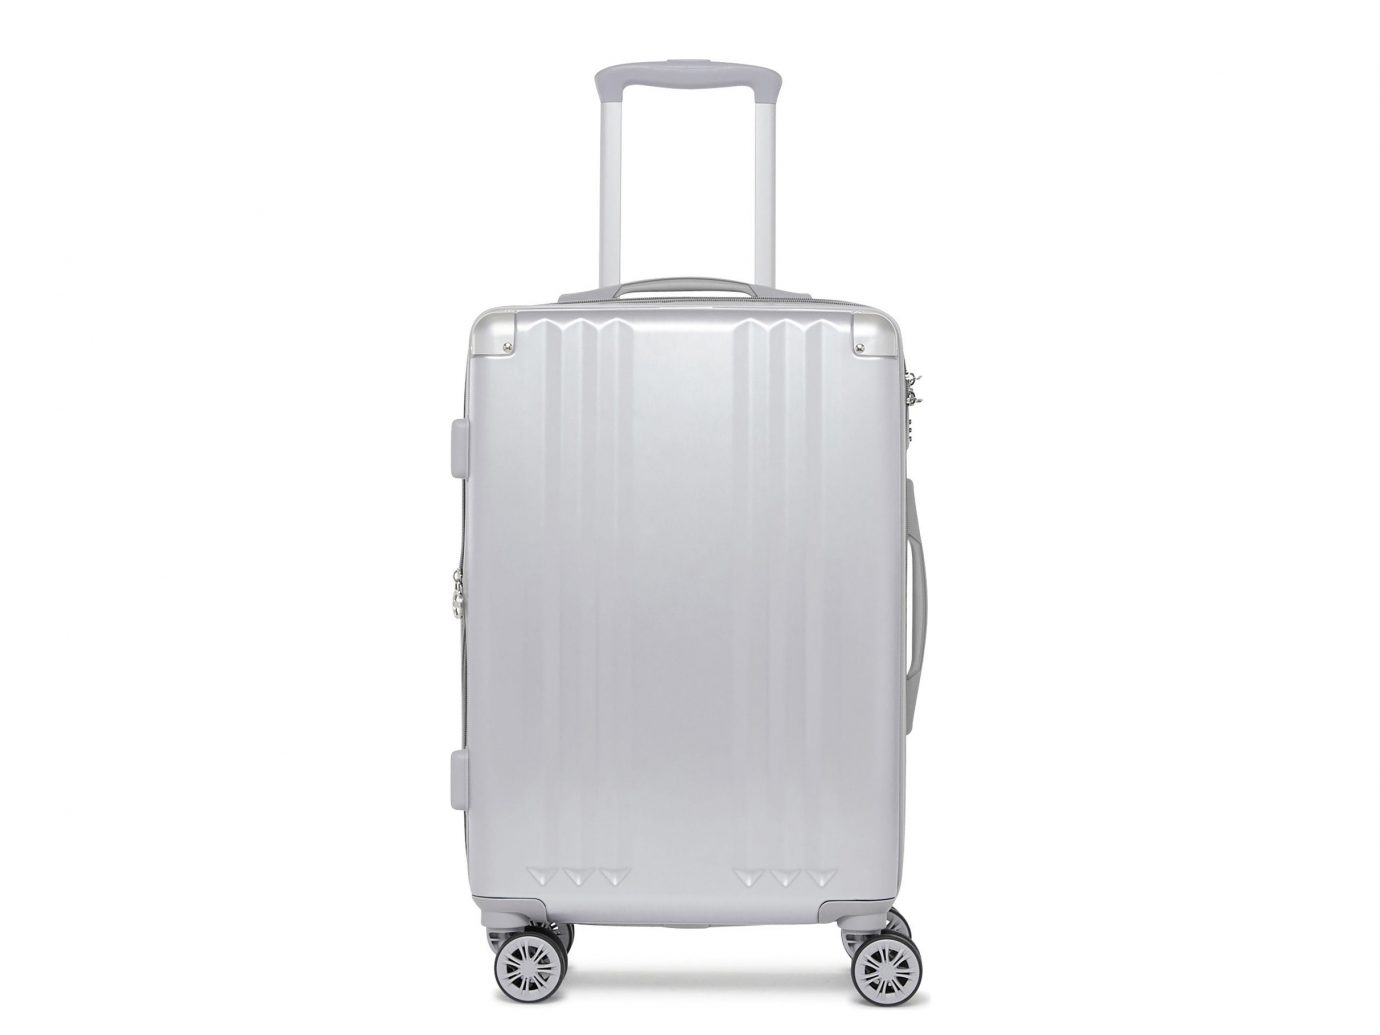 ccbe53d6e2c0 The Best Carry-On Luggage and Suitcases | Jetsetter